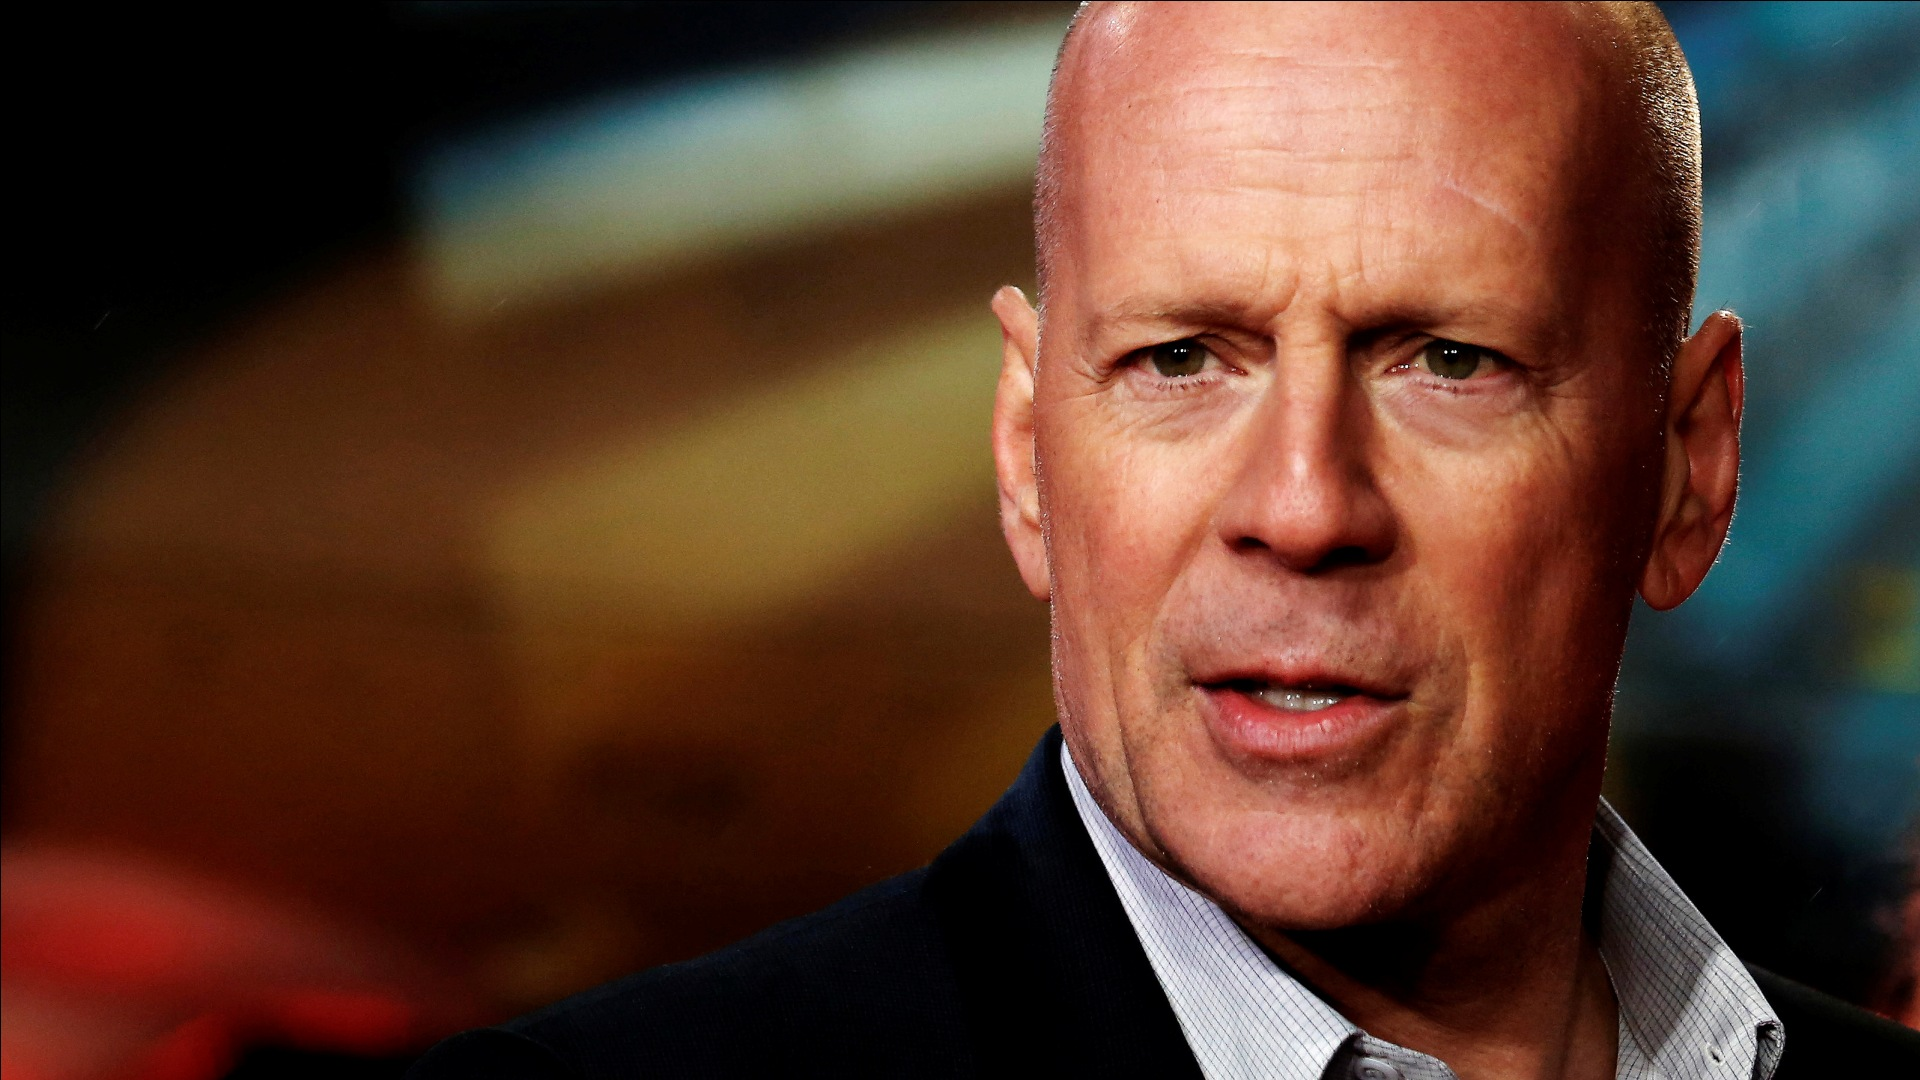 Bruce Willis images Bruce HD wallpaper and background ... Bruce Willis